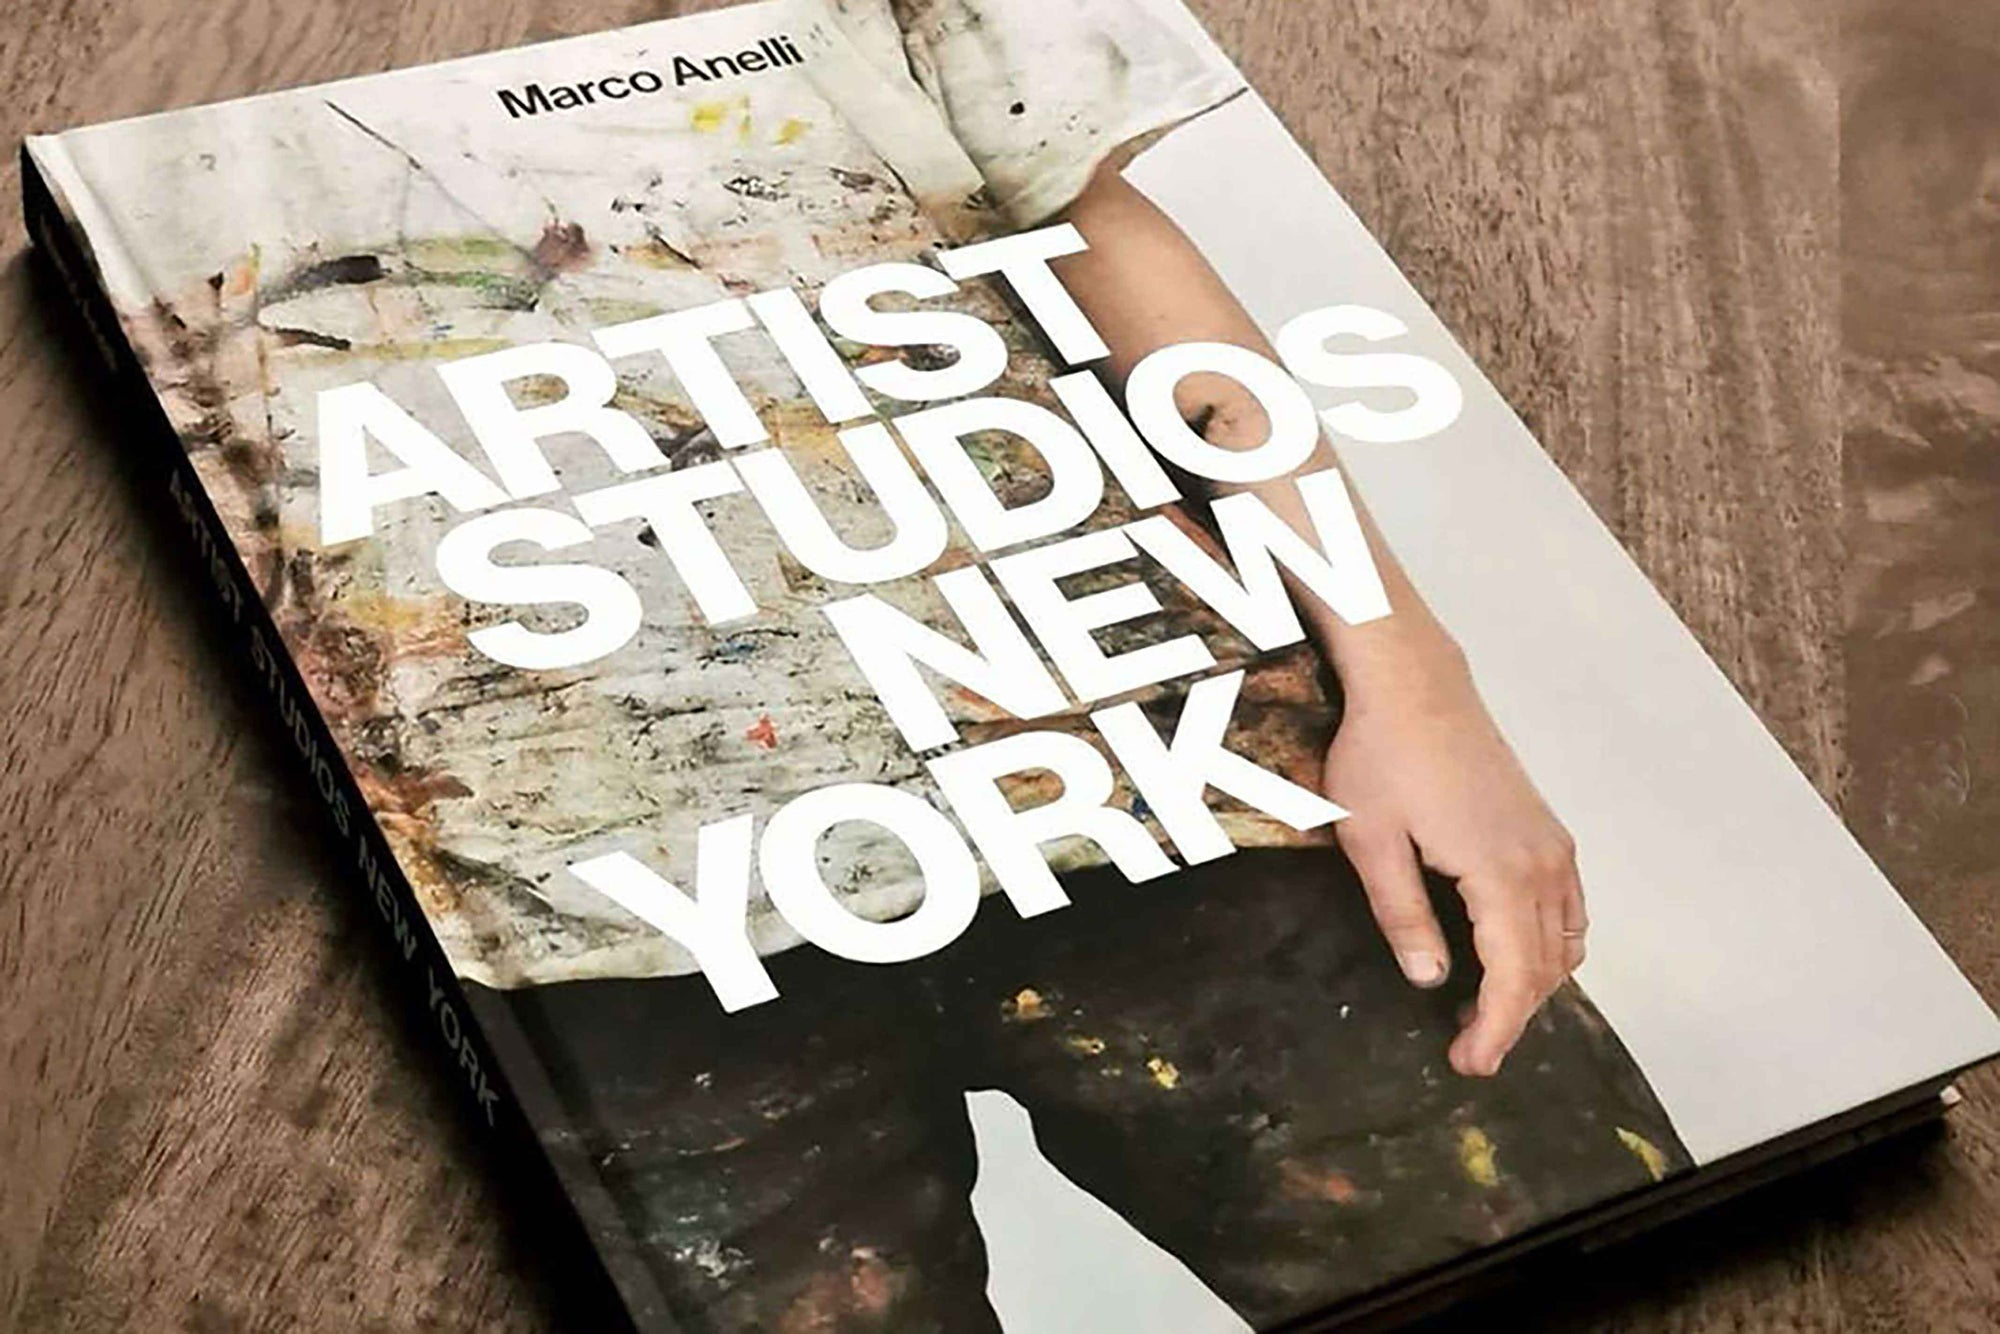 Artist Studio New York by Marco Anelli